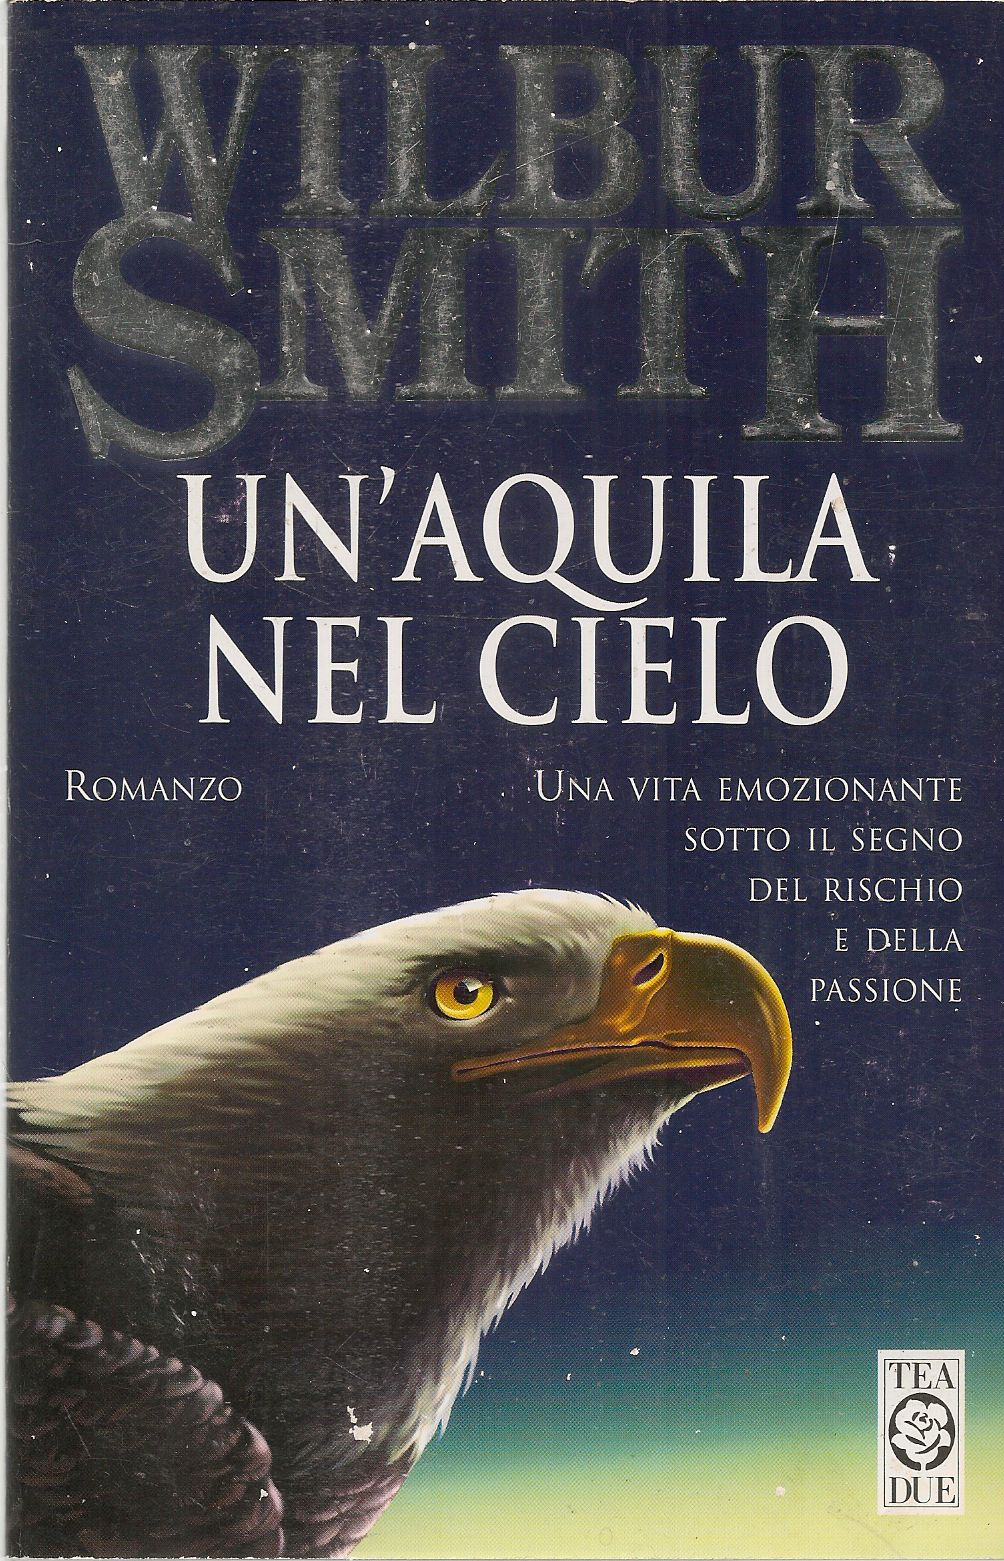 UN'AQUILA NEL CIELO - WILBUR SMITH - ED. TEA DUE 2000